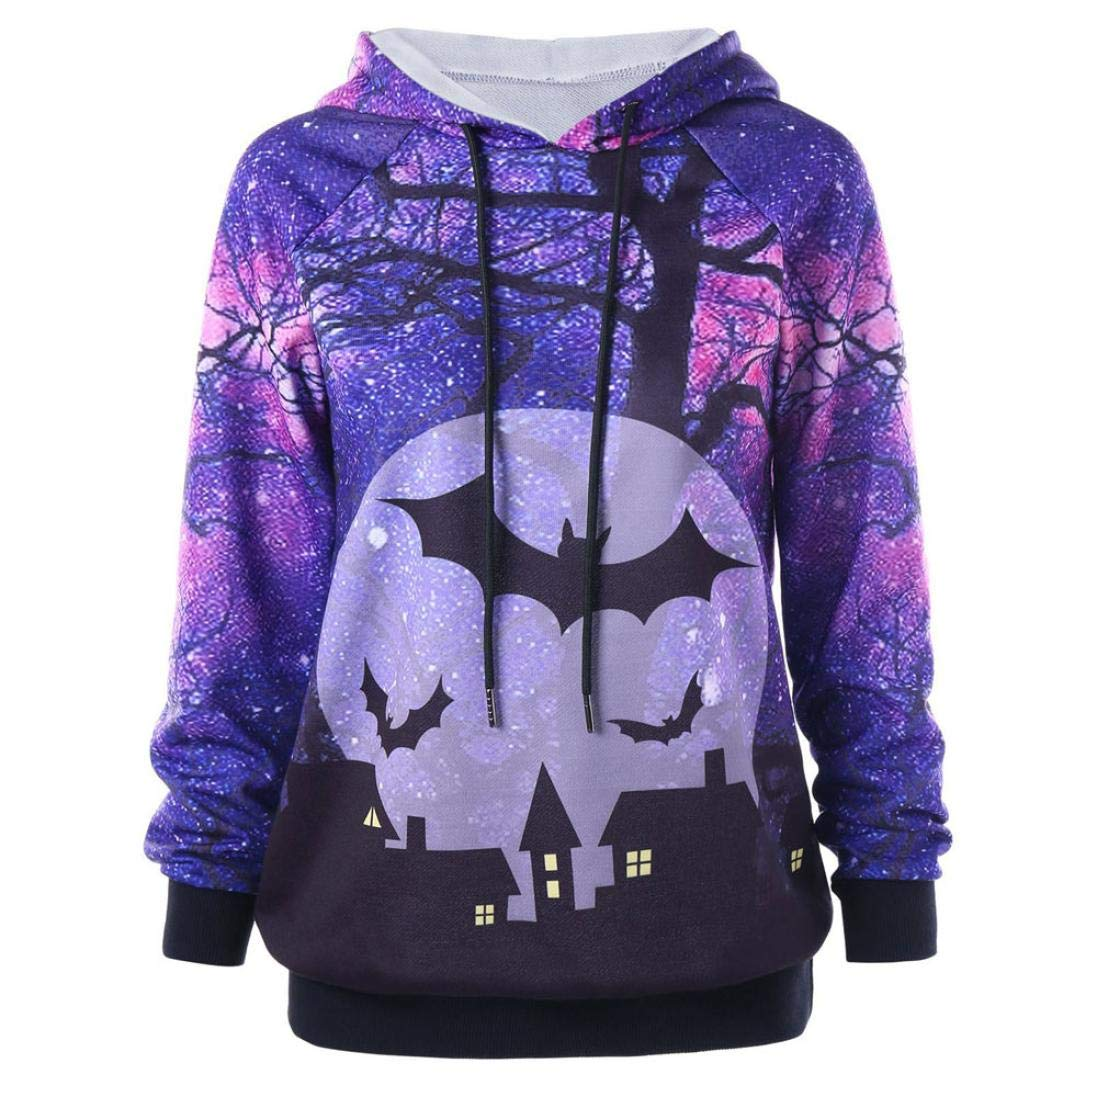 TIFIY Women's/Ladies/Girl's Printed Hoodies Halloween Costume Fashion Bat Printed Sweatshirt Loose Casual Tops Shirt Full Sleeve Pullover Tunic Daily Club Party Sports Blouse Autumn Winter 2018 Sweater-T-Shirts-0820